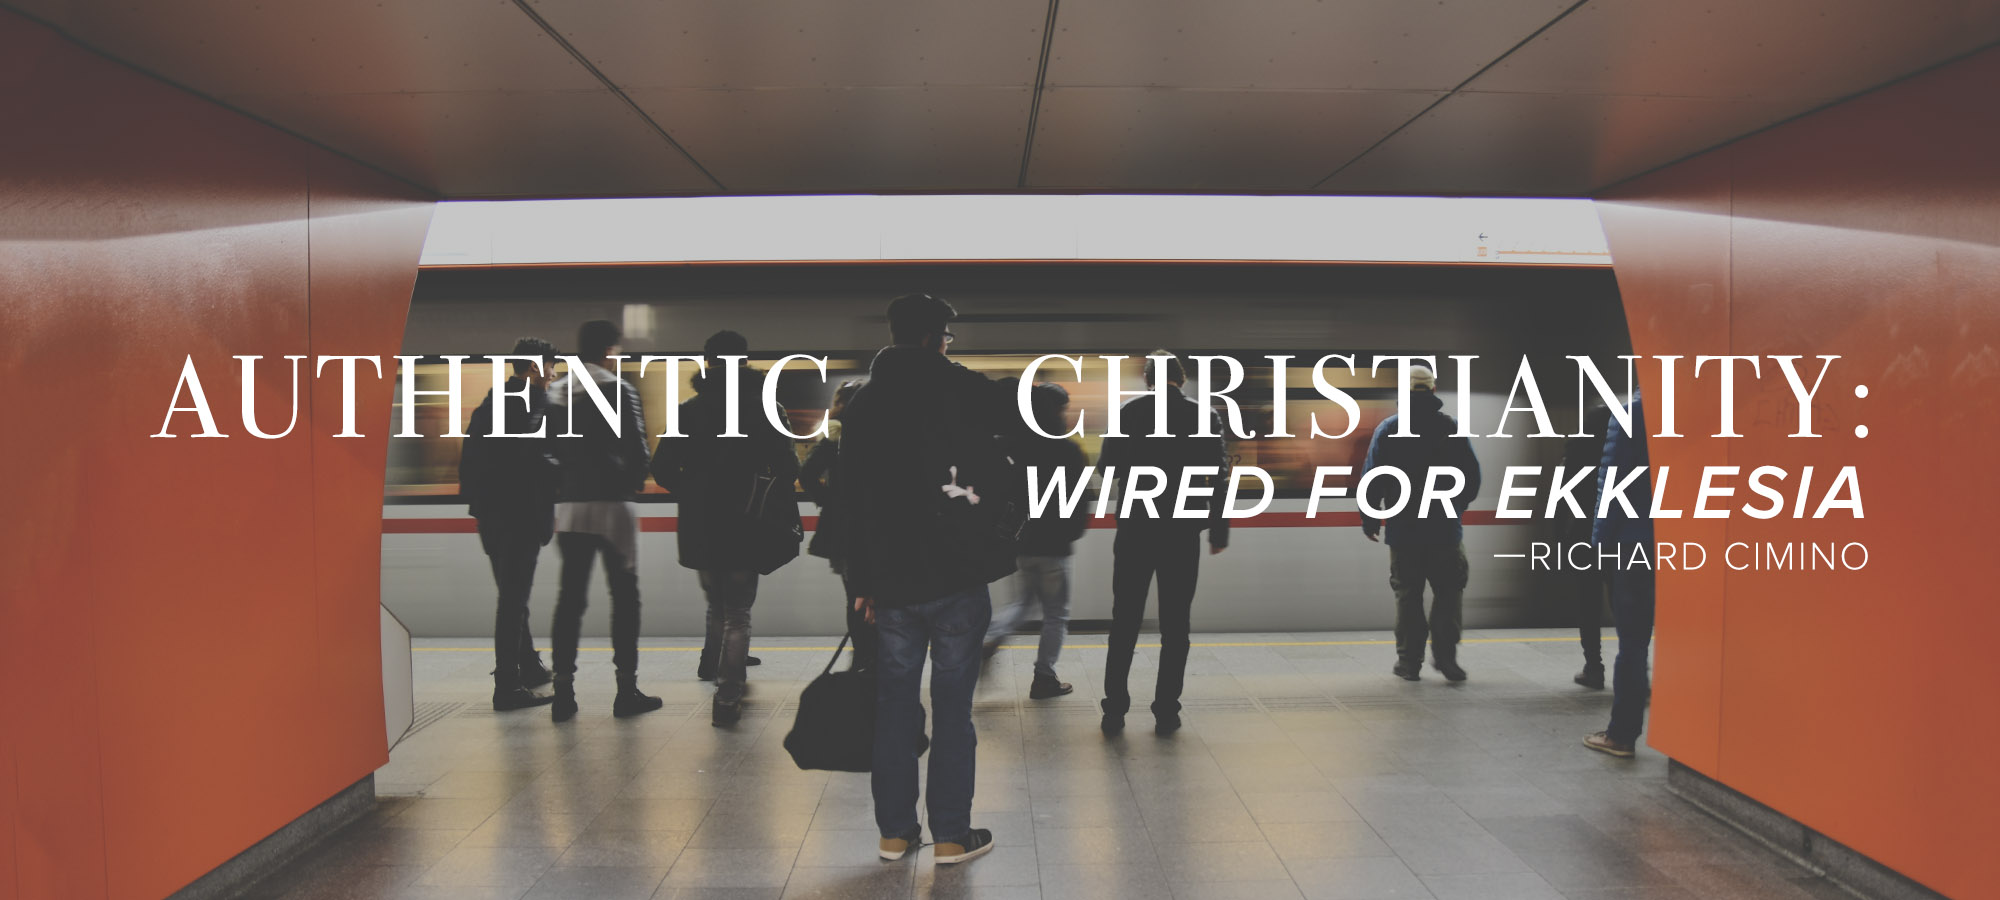 Authentic Christianity: Wired for Ekklesia